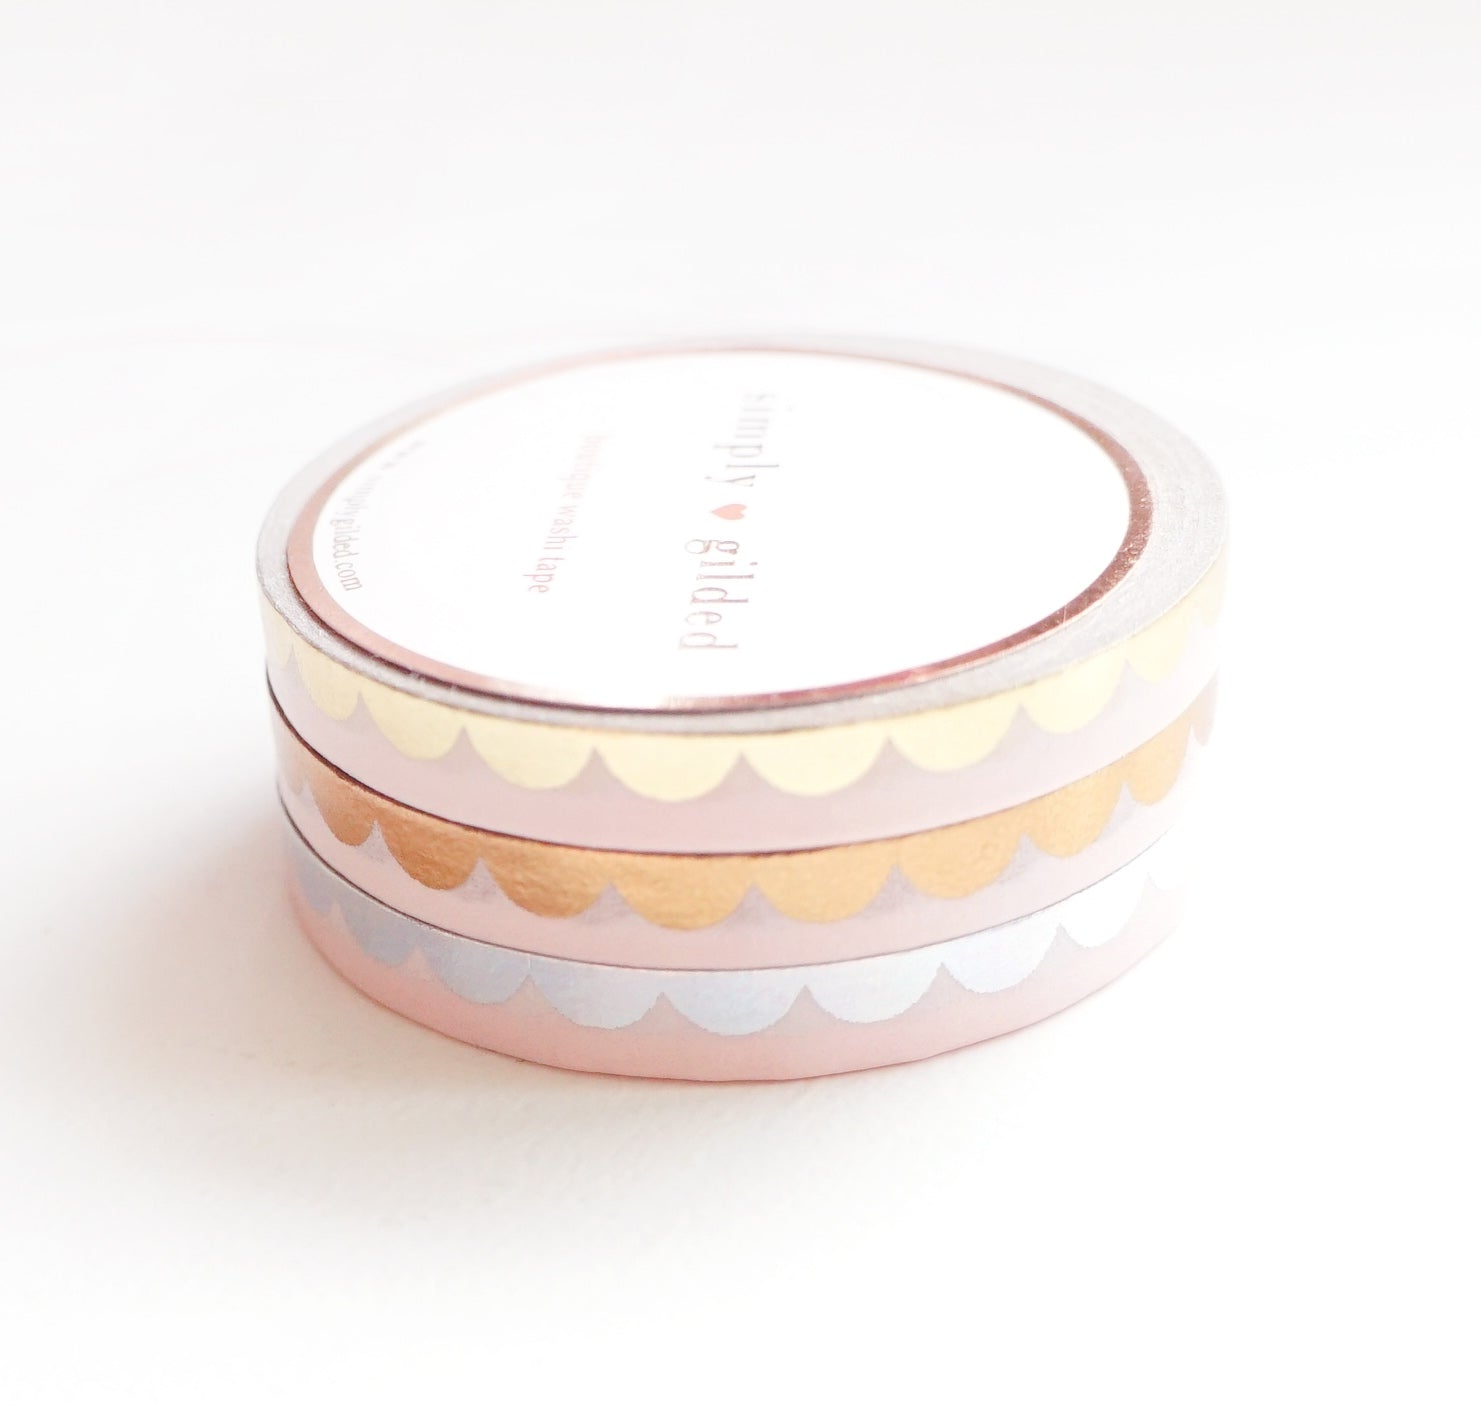 PERFORATED WASHI TAPE 6mm set of 3 - Classic PINK SCALLOP + gold/rose gold/silver holographic foil (January 31 Mini Release)